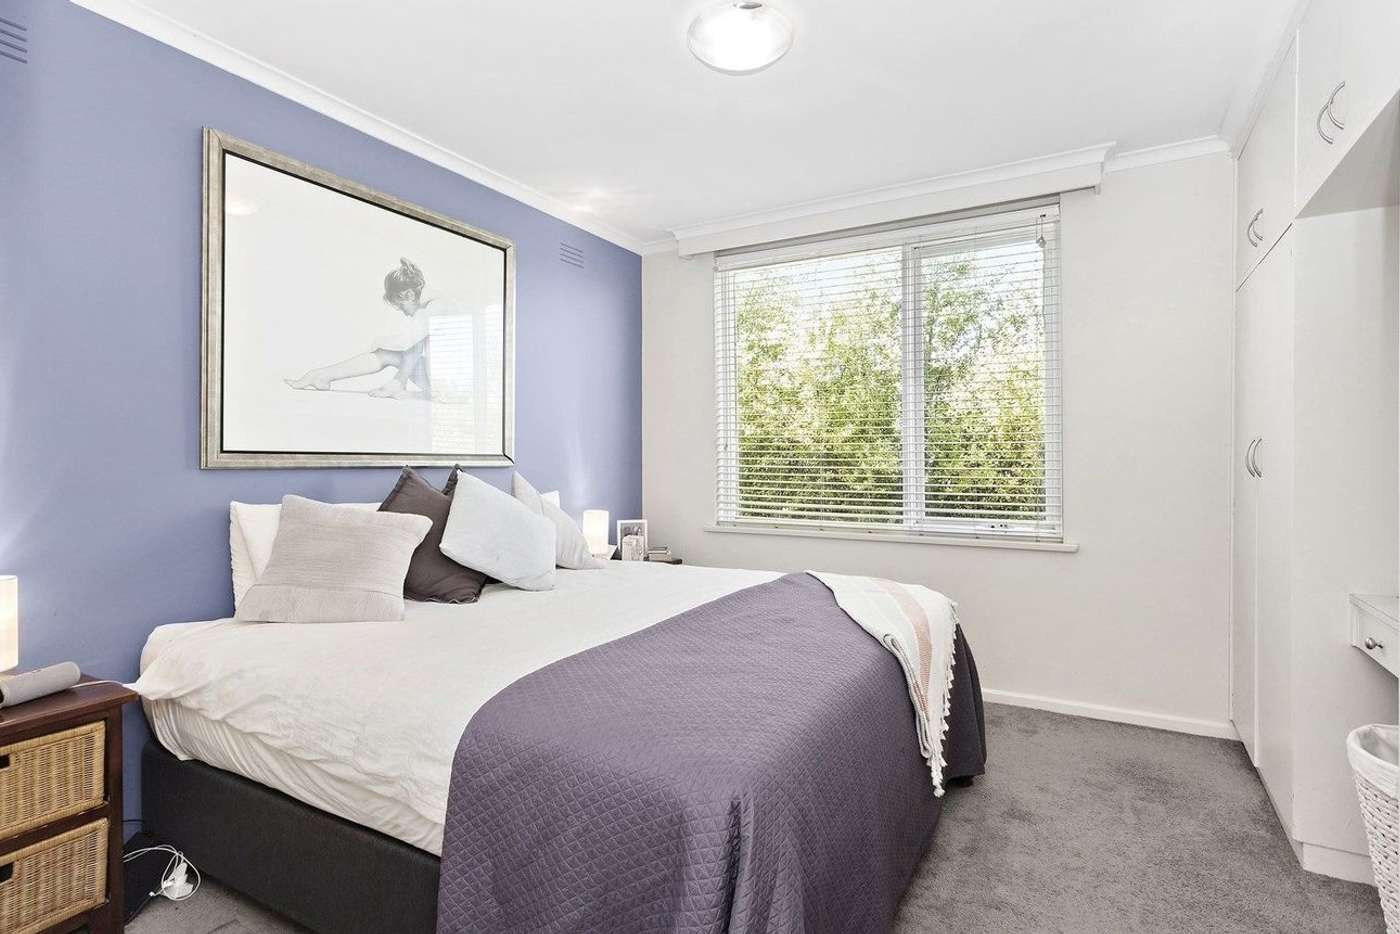 Sixth view of Homely apartment listing, 5/1464 Malvern Road, Glen Iris VIC 3146